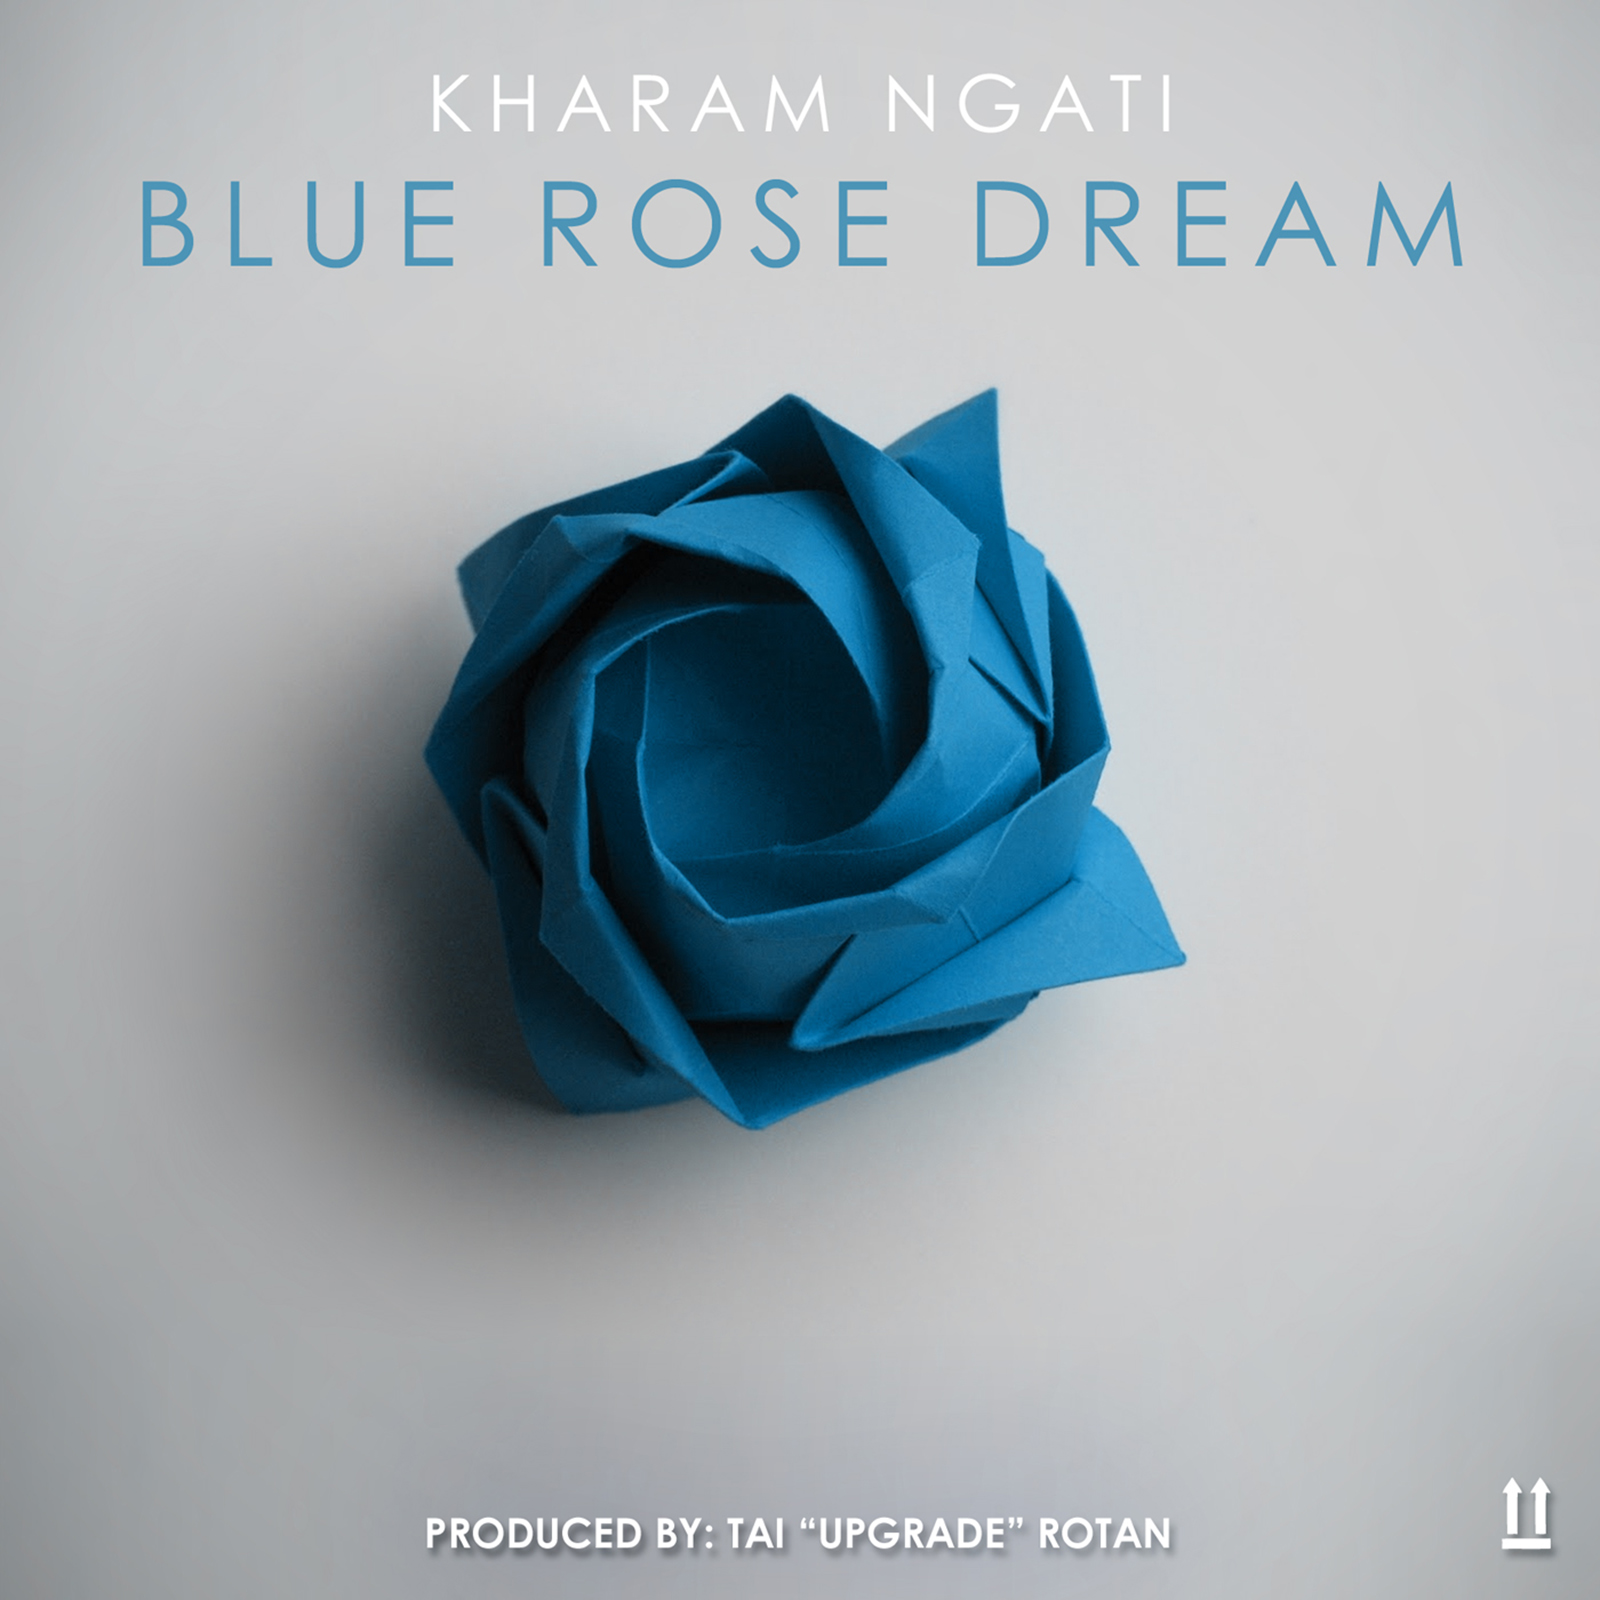 Blue Rose Dream - Kharam Ngati